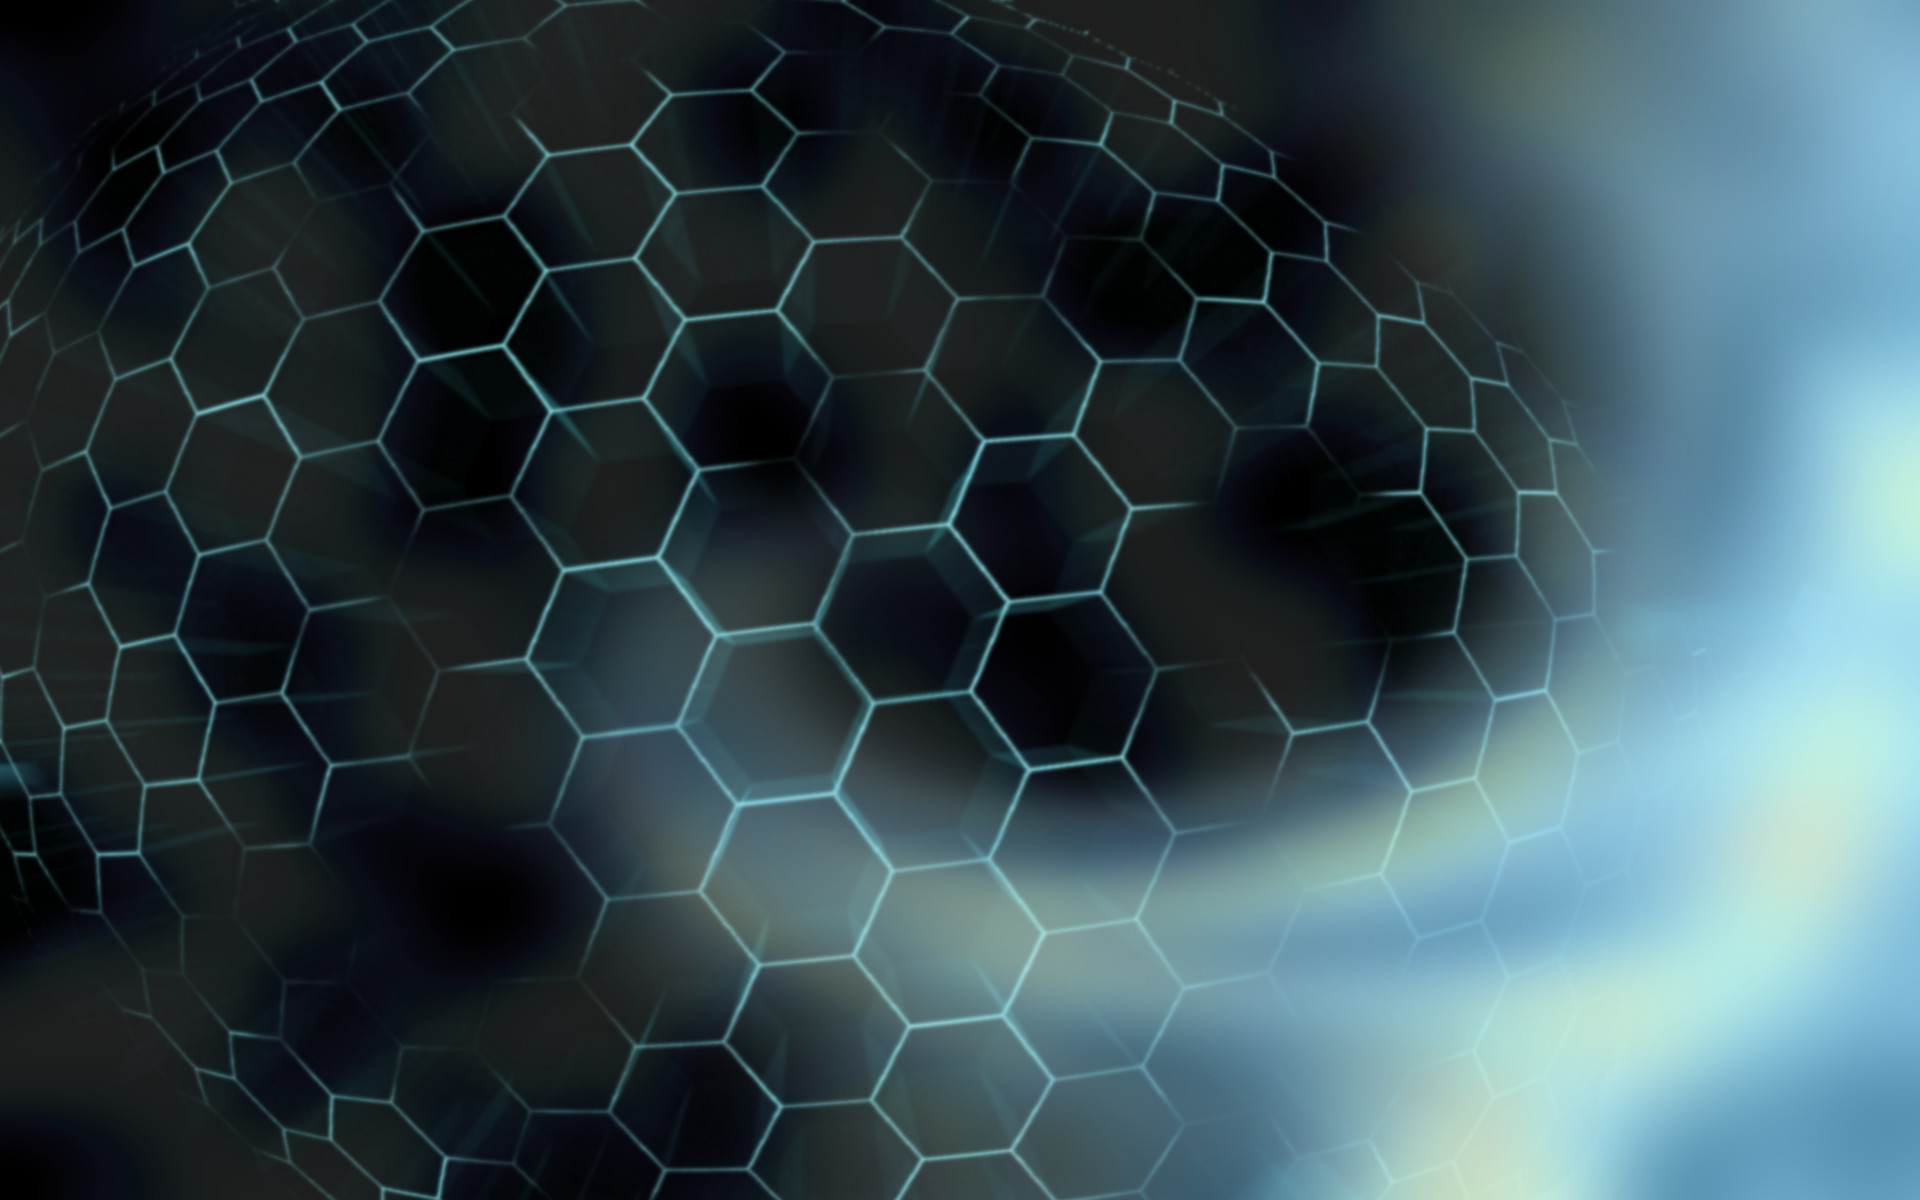 hex grid hexagon pattern wallpapersafari wallpapertag deviantart